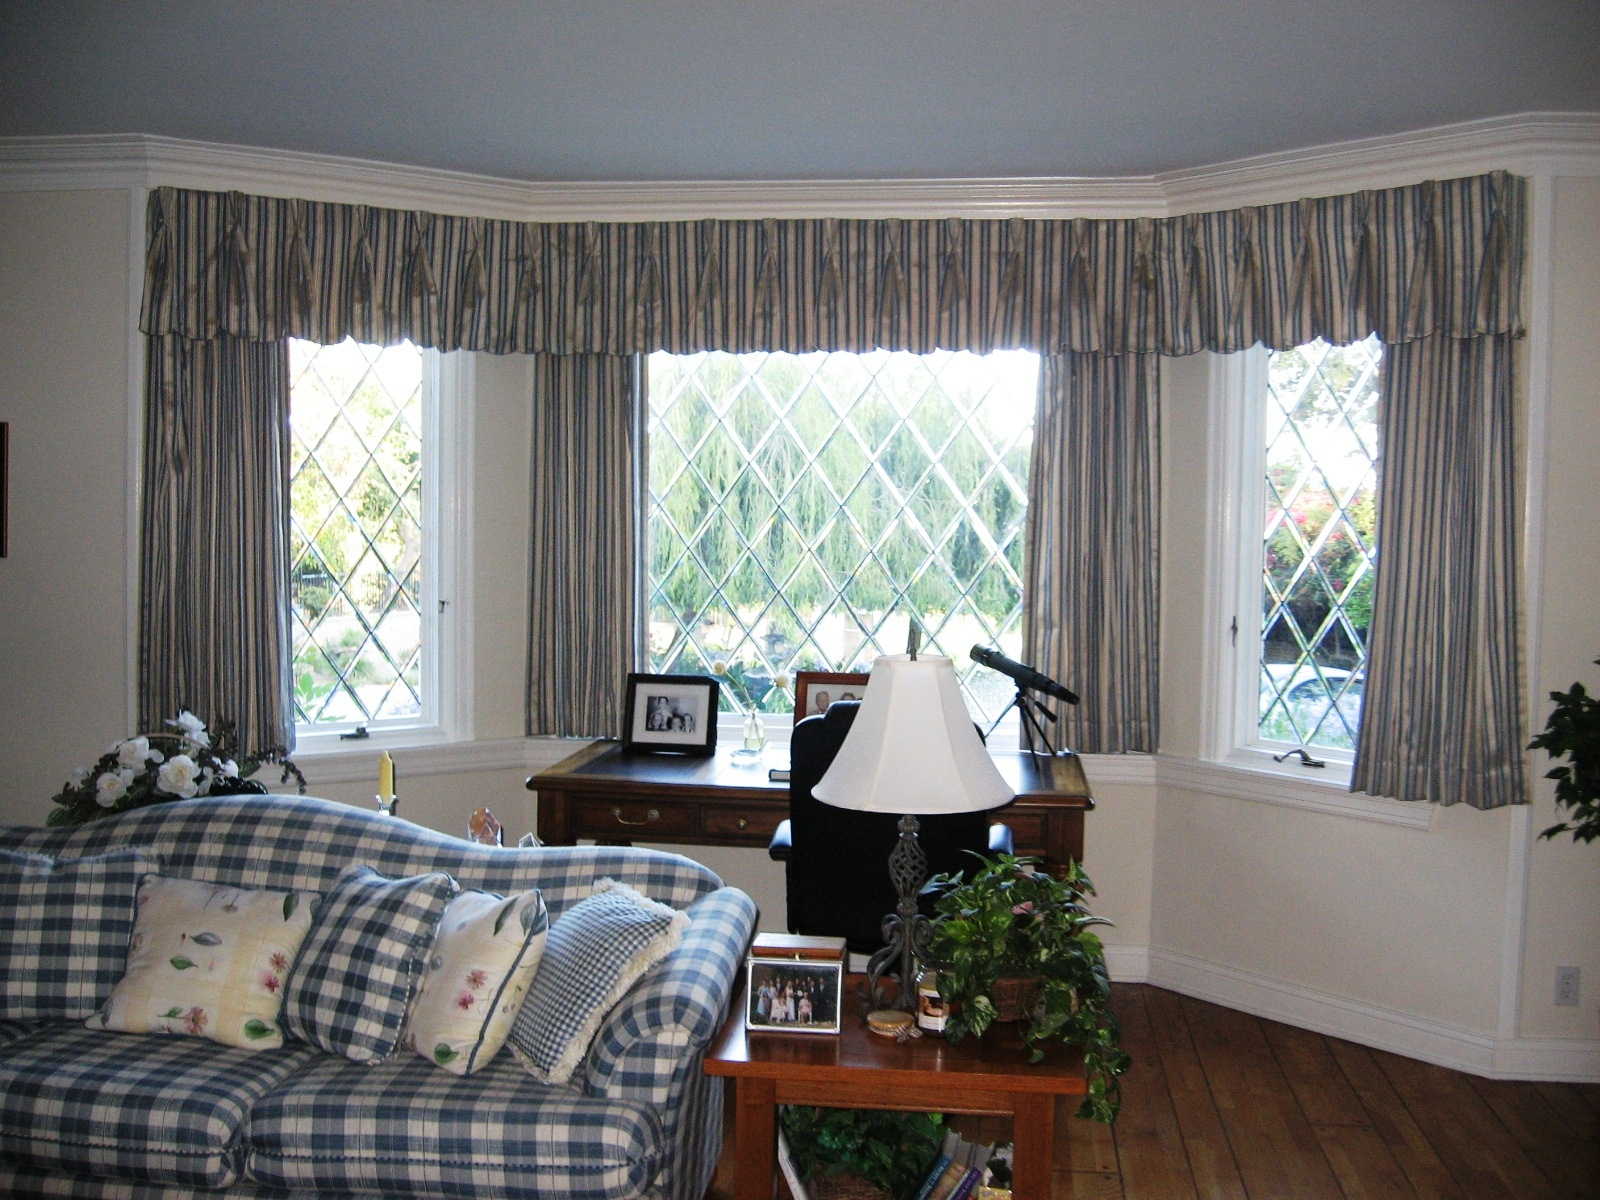 Curtains For Small Bay Windows Design With Curtain Decor Stunning With Regard To Curtains For Small Bay Windows (Image 10 of 15)